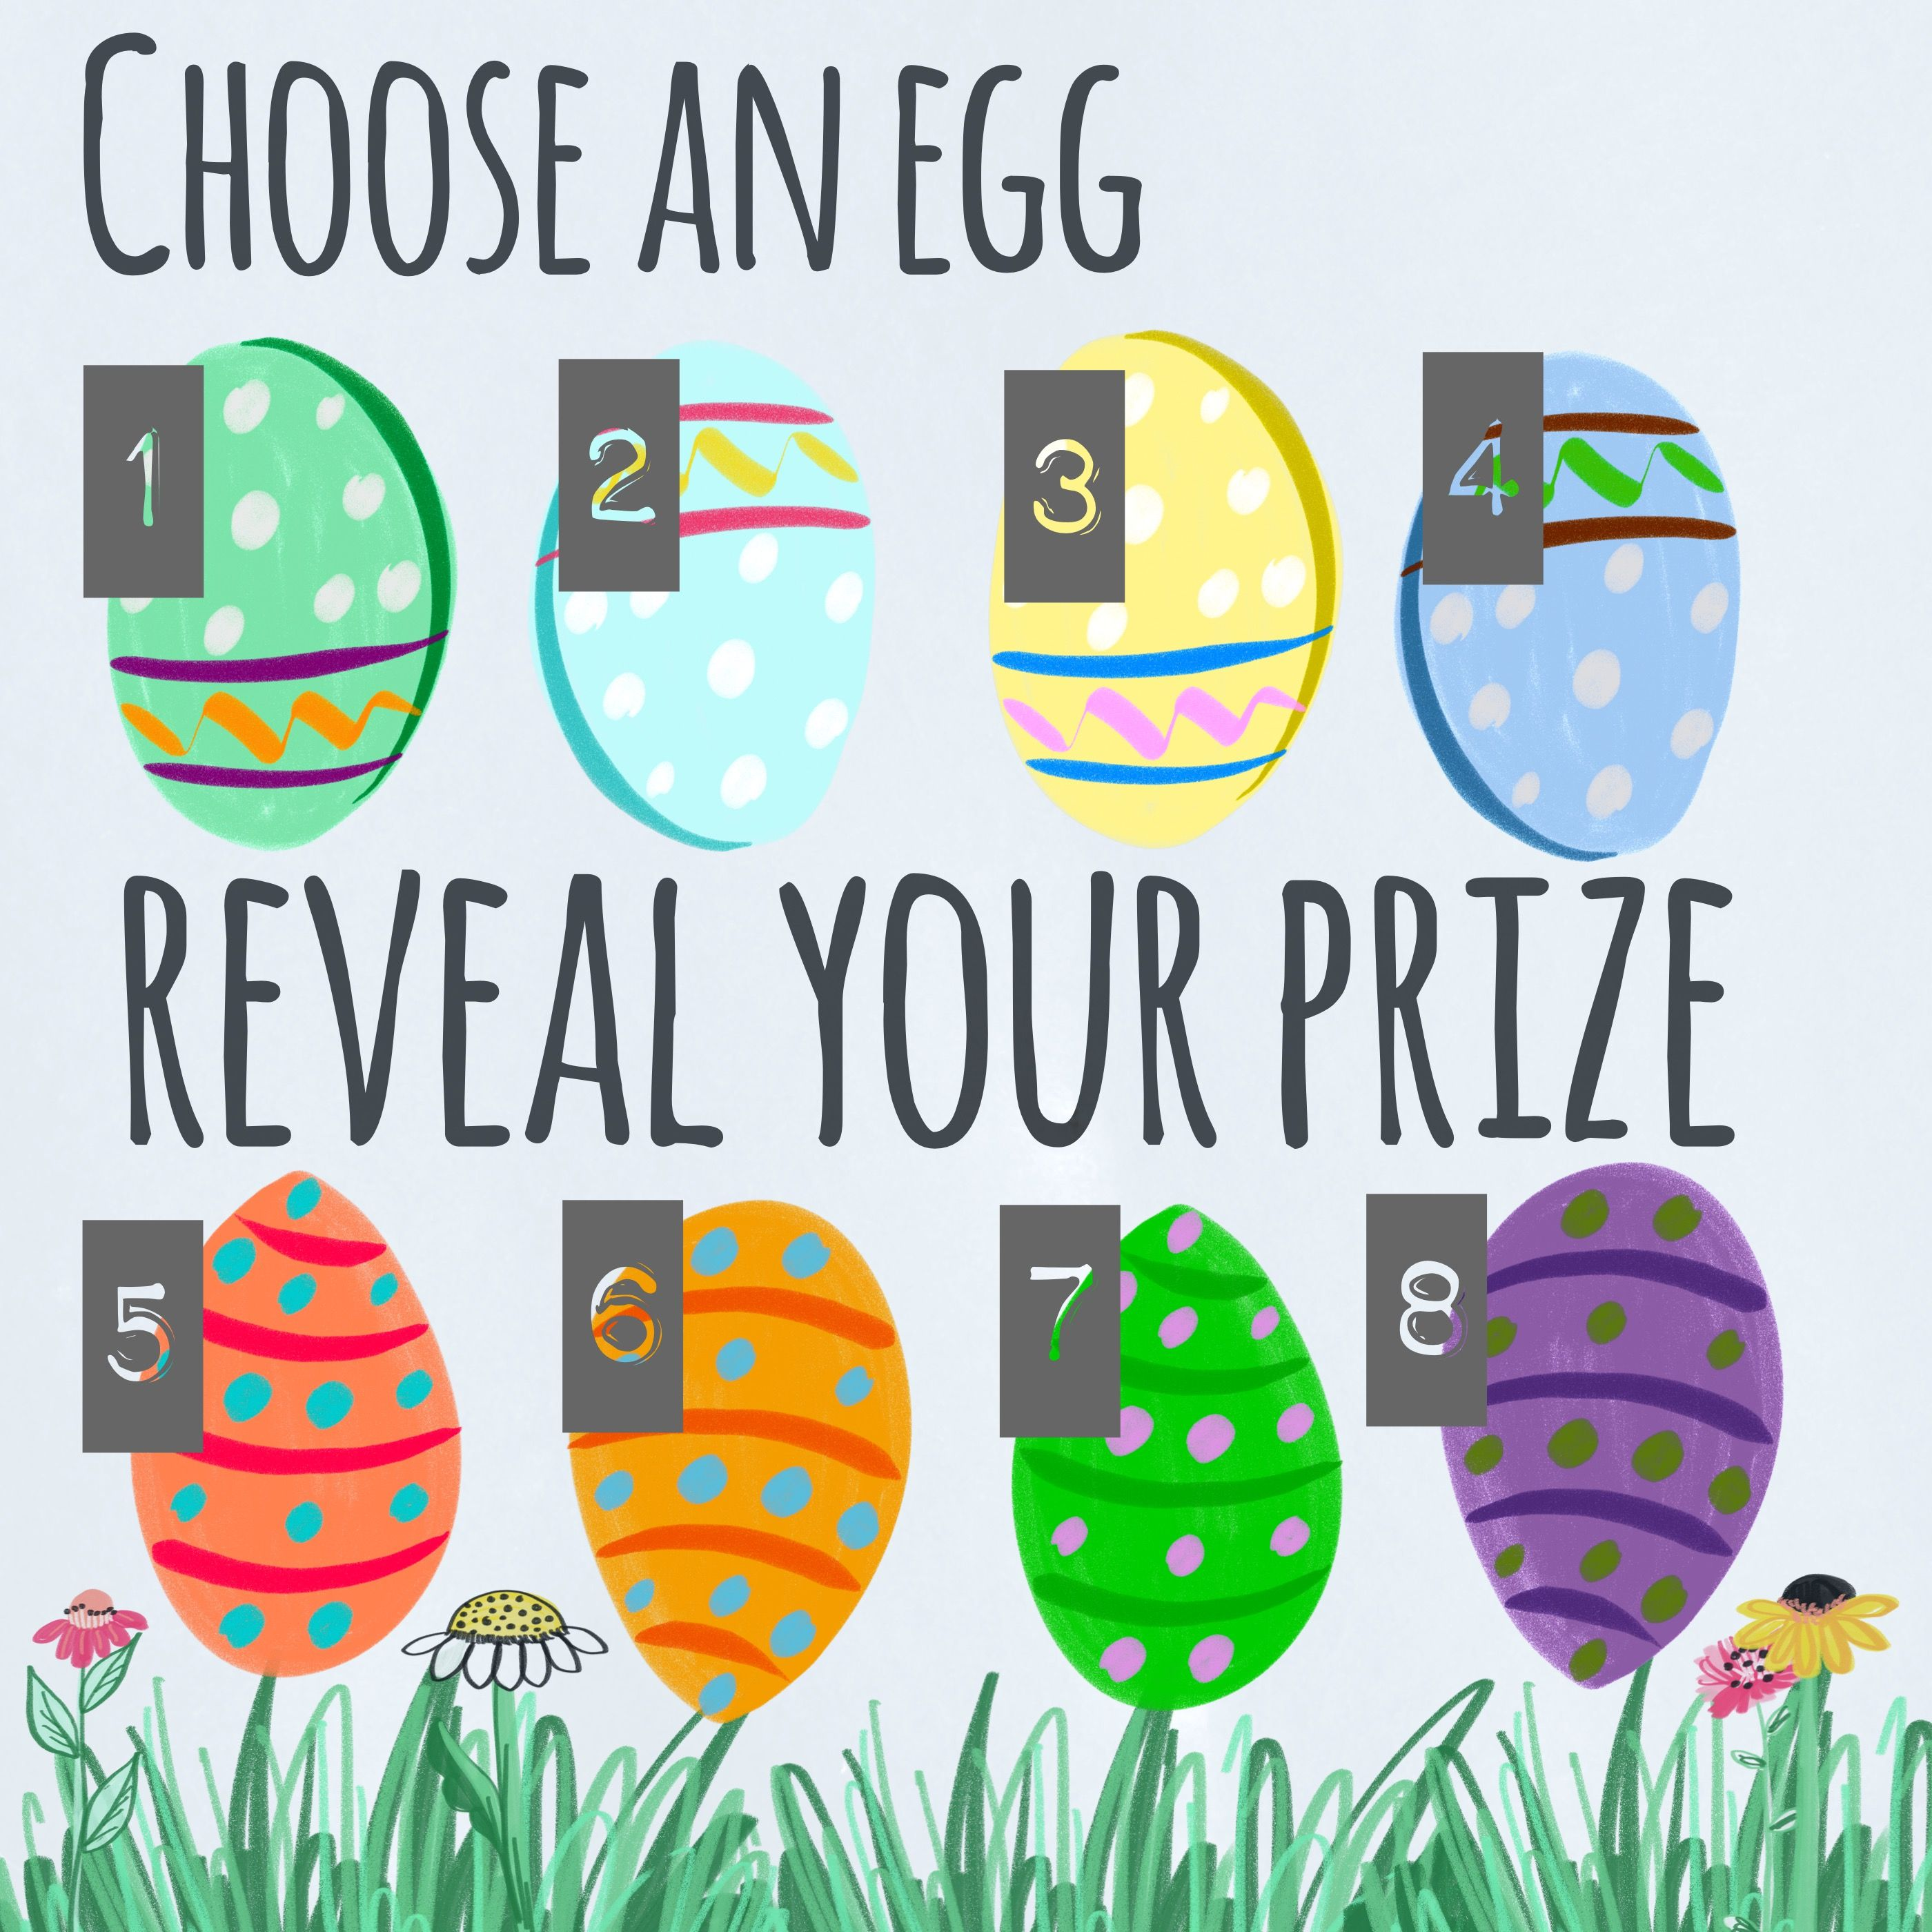 Choose an egg, reveal your prize. Facebook or VIP group